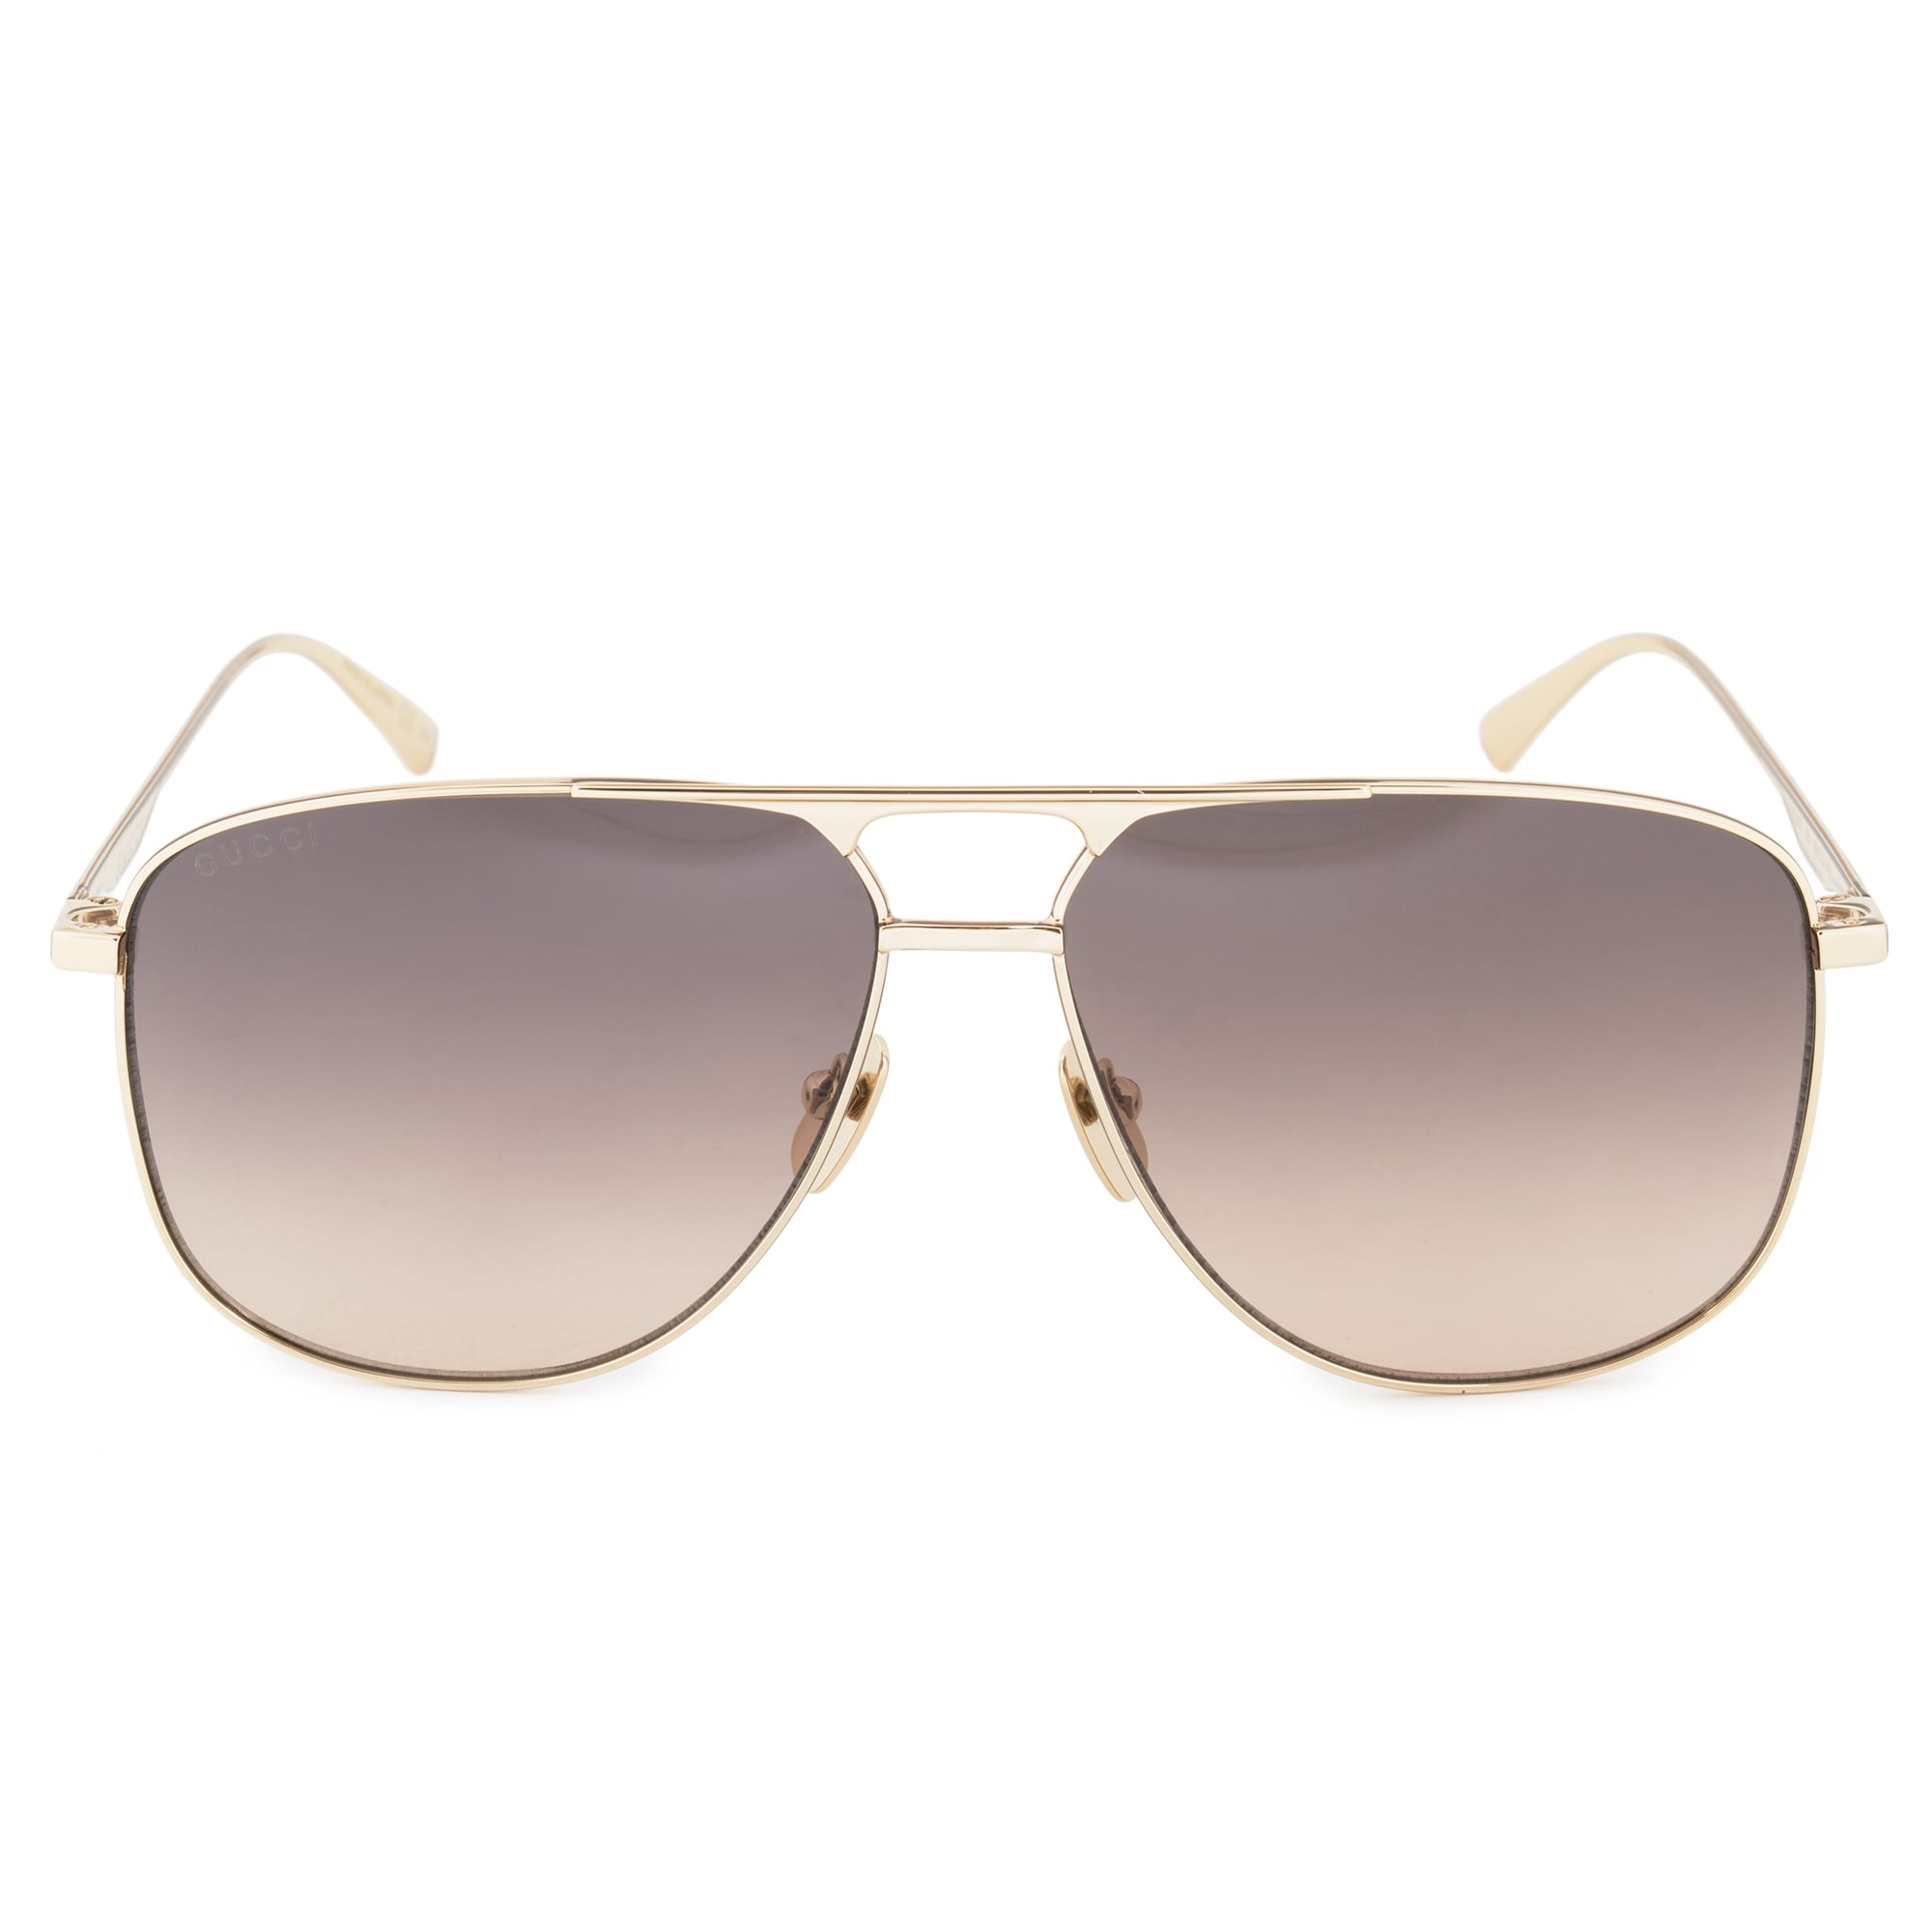 9e85c5960ce Shop Gucci GG0336S 001 60 Aviator Sunglasses - Free Shipping Today ...